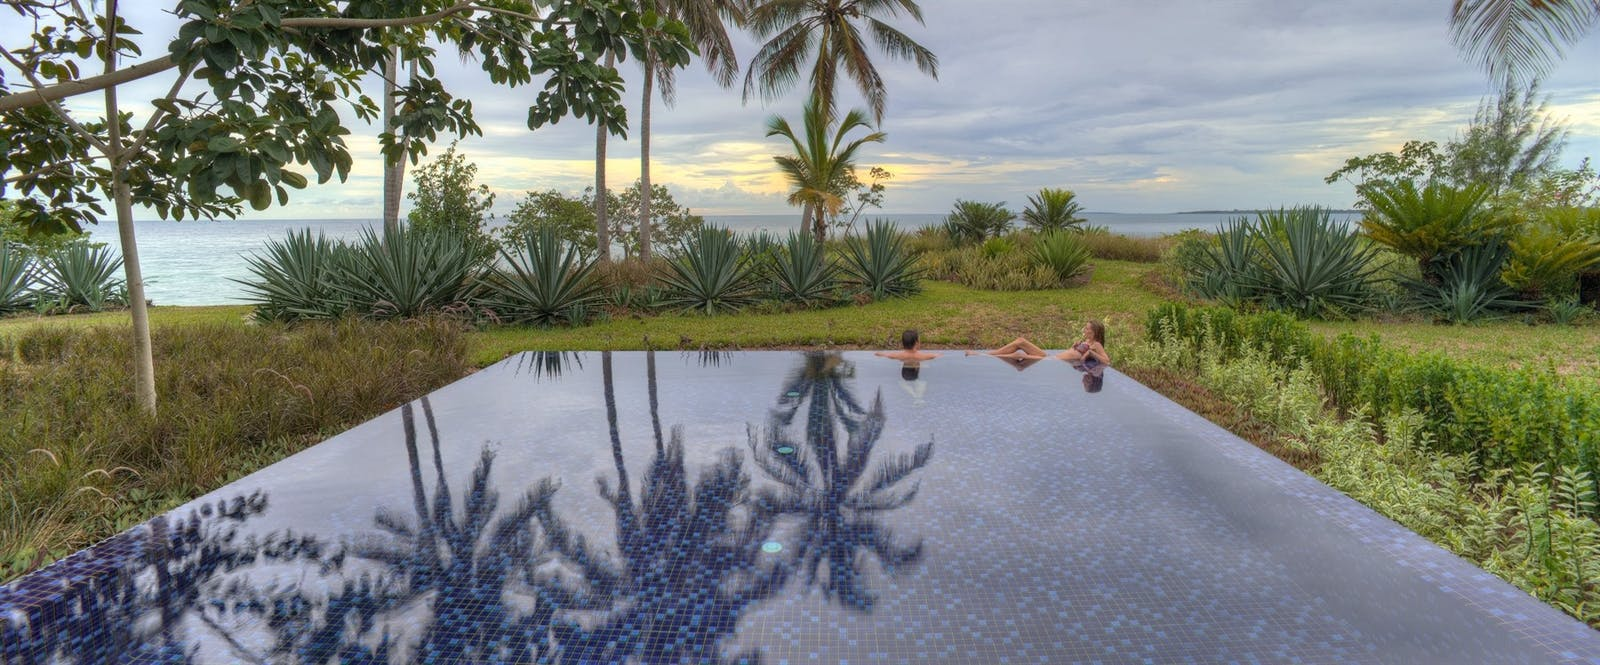 Pool With a View at The Residence, Zanzibar